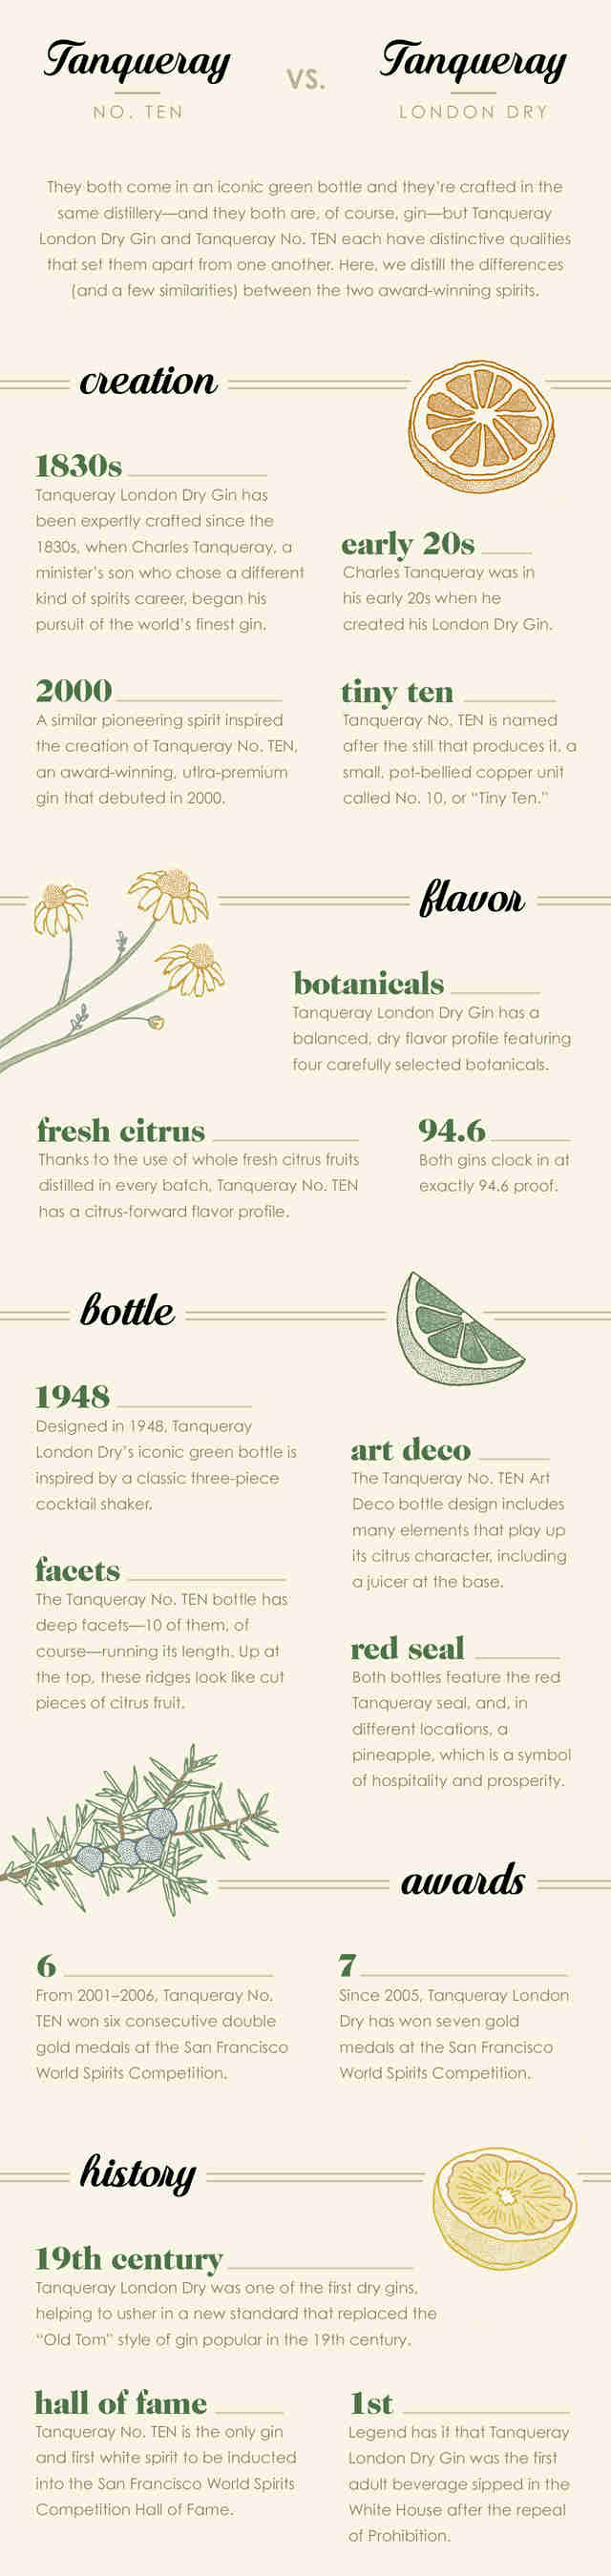 Tanqueray London Dry vs Tanqueray No. TEN infographic - Supercall